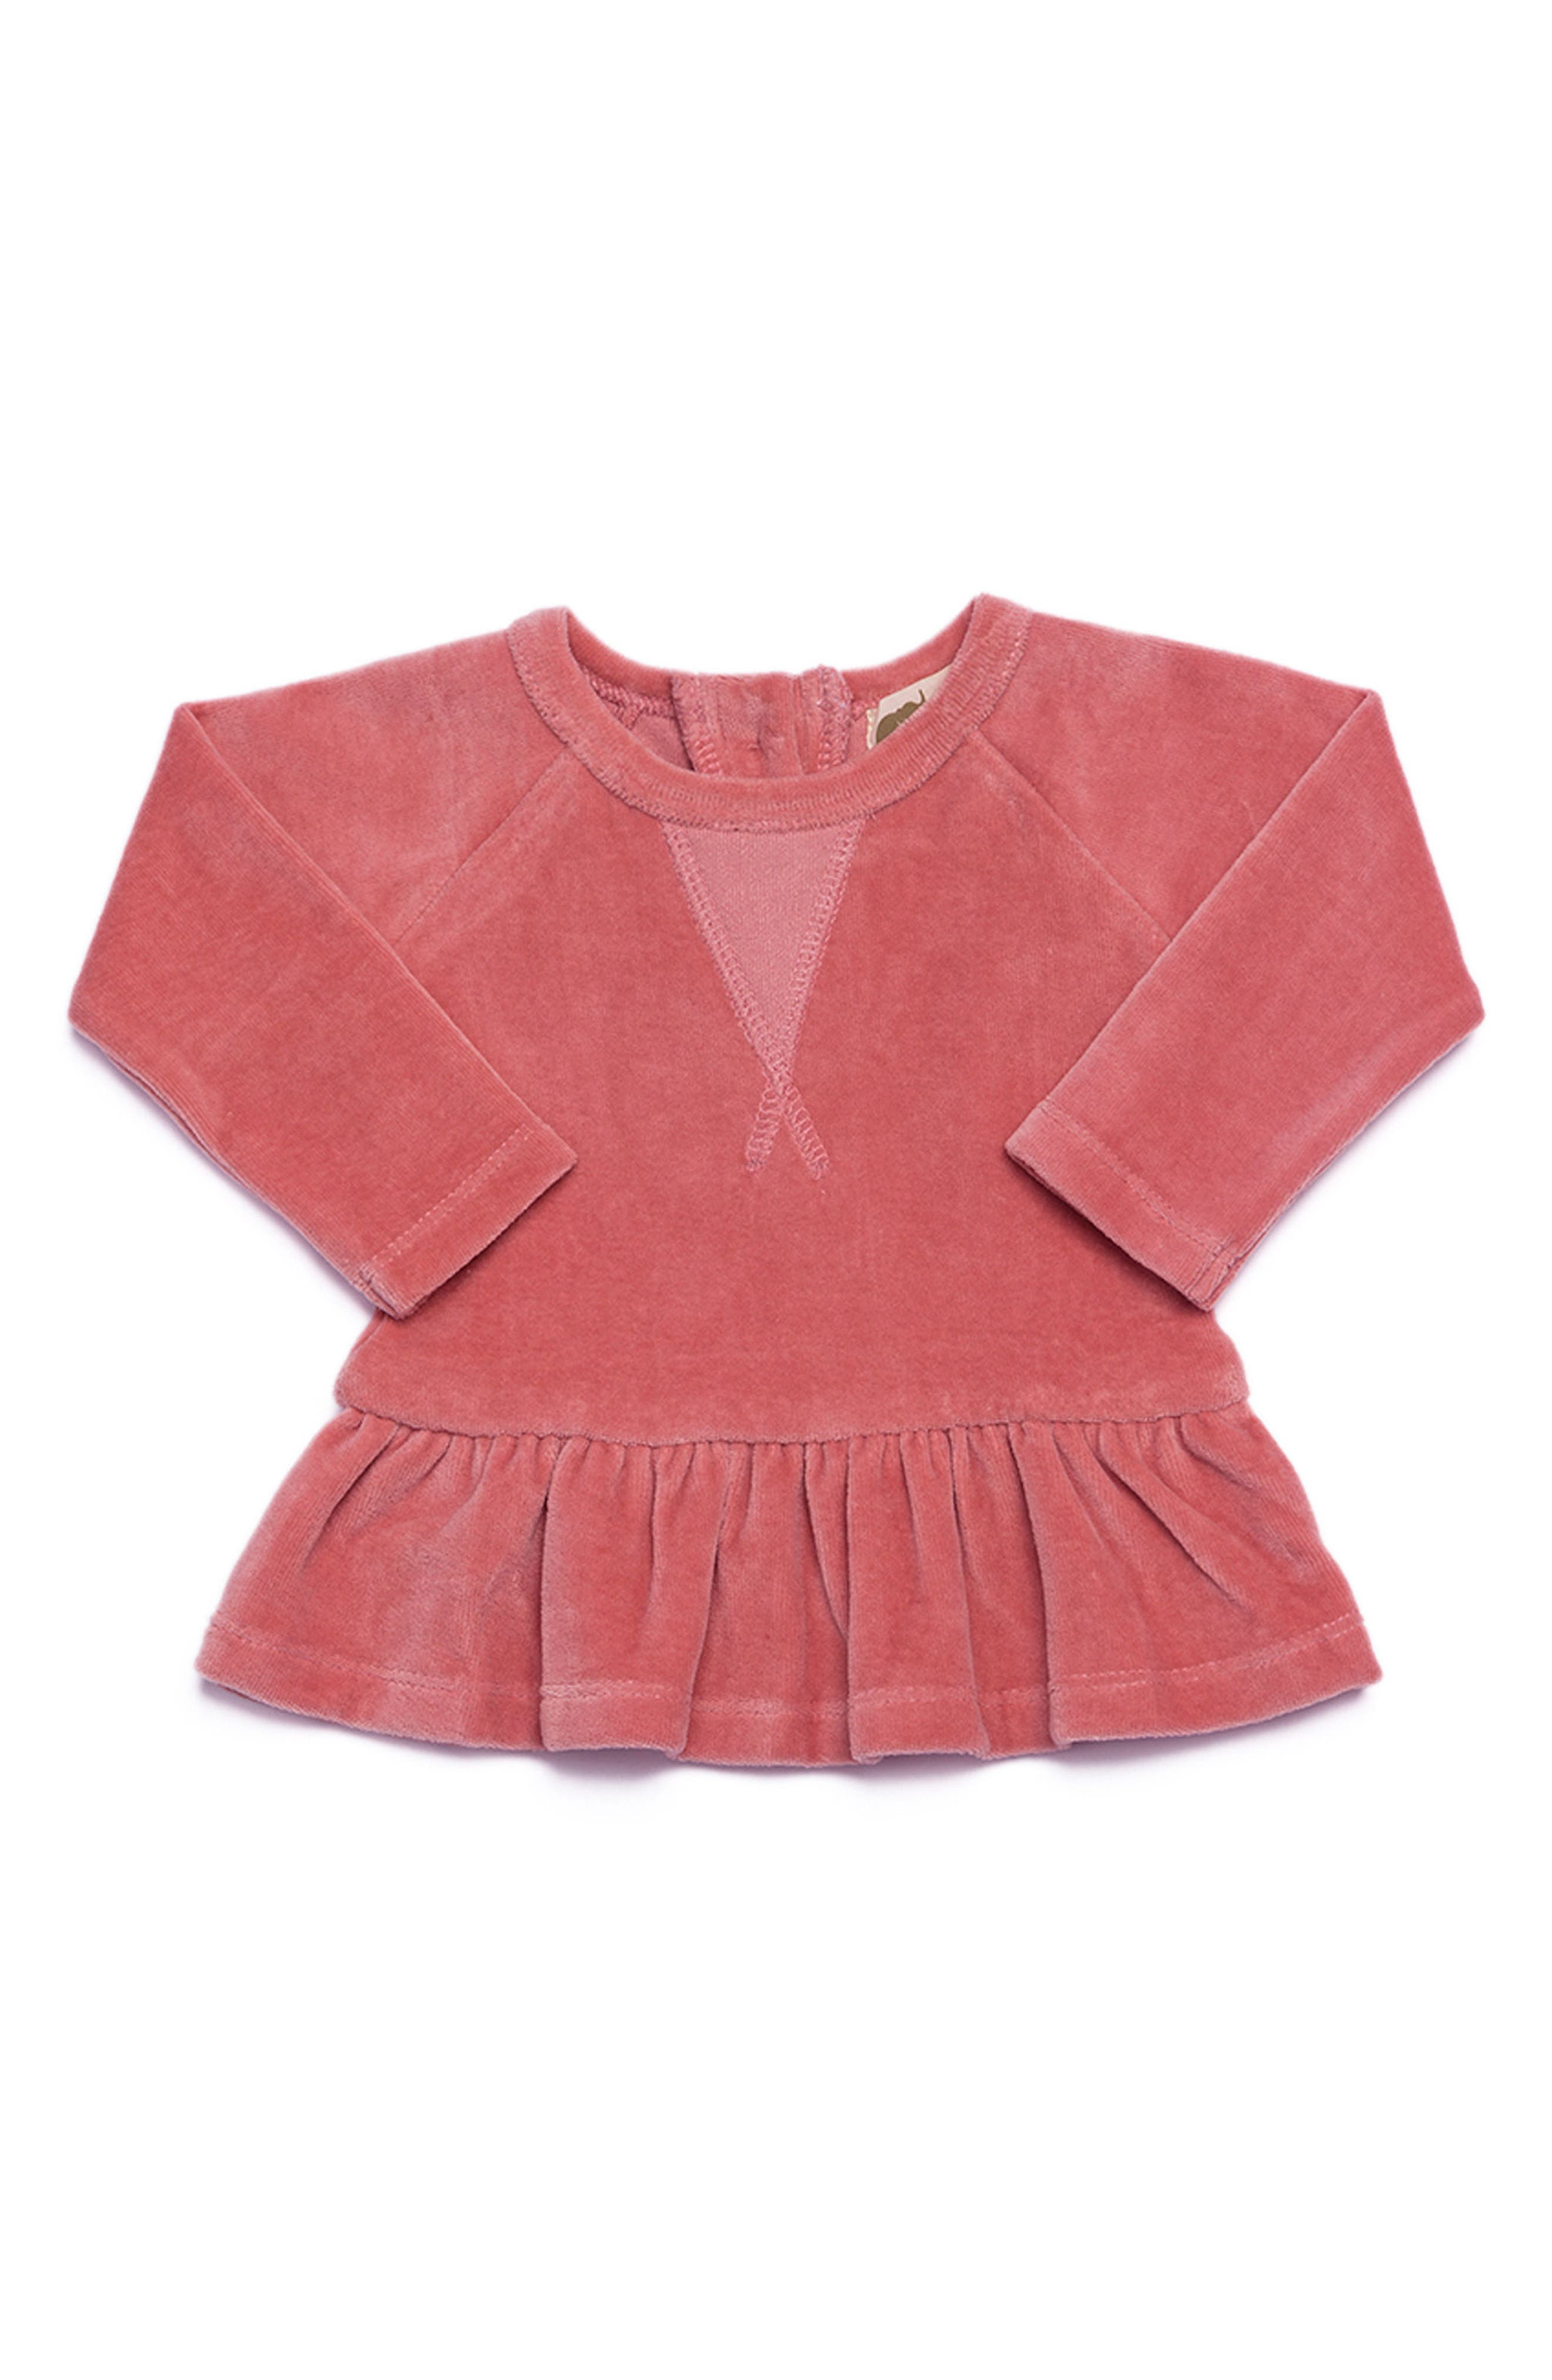 Organic Cotton Peplum Sweatshirt,                         Main,                         color, Dusty Pink